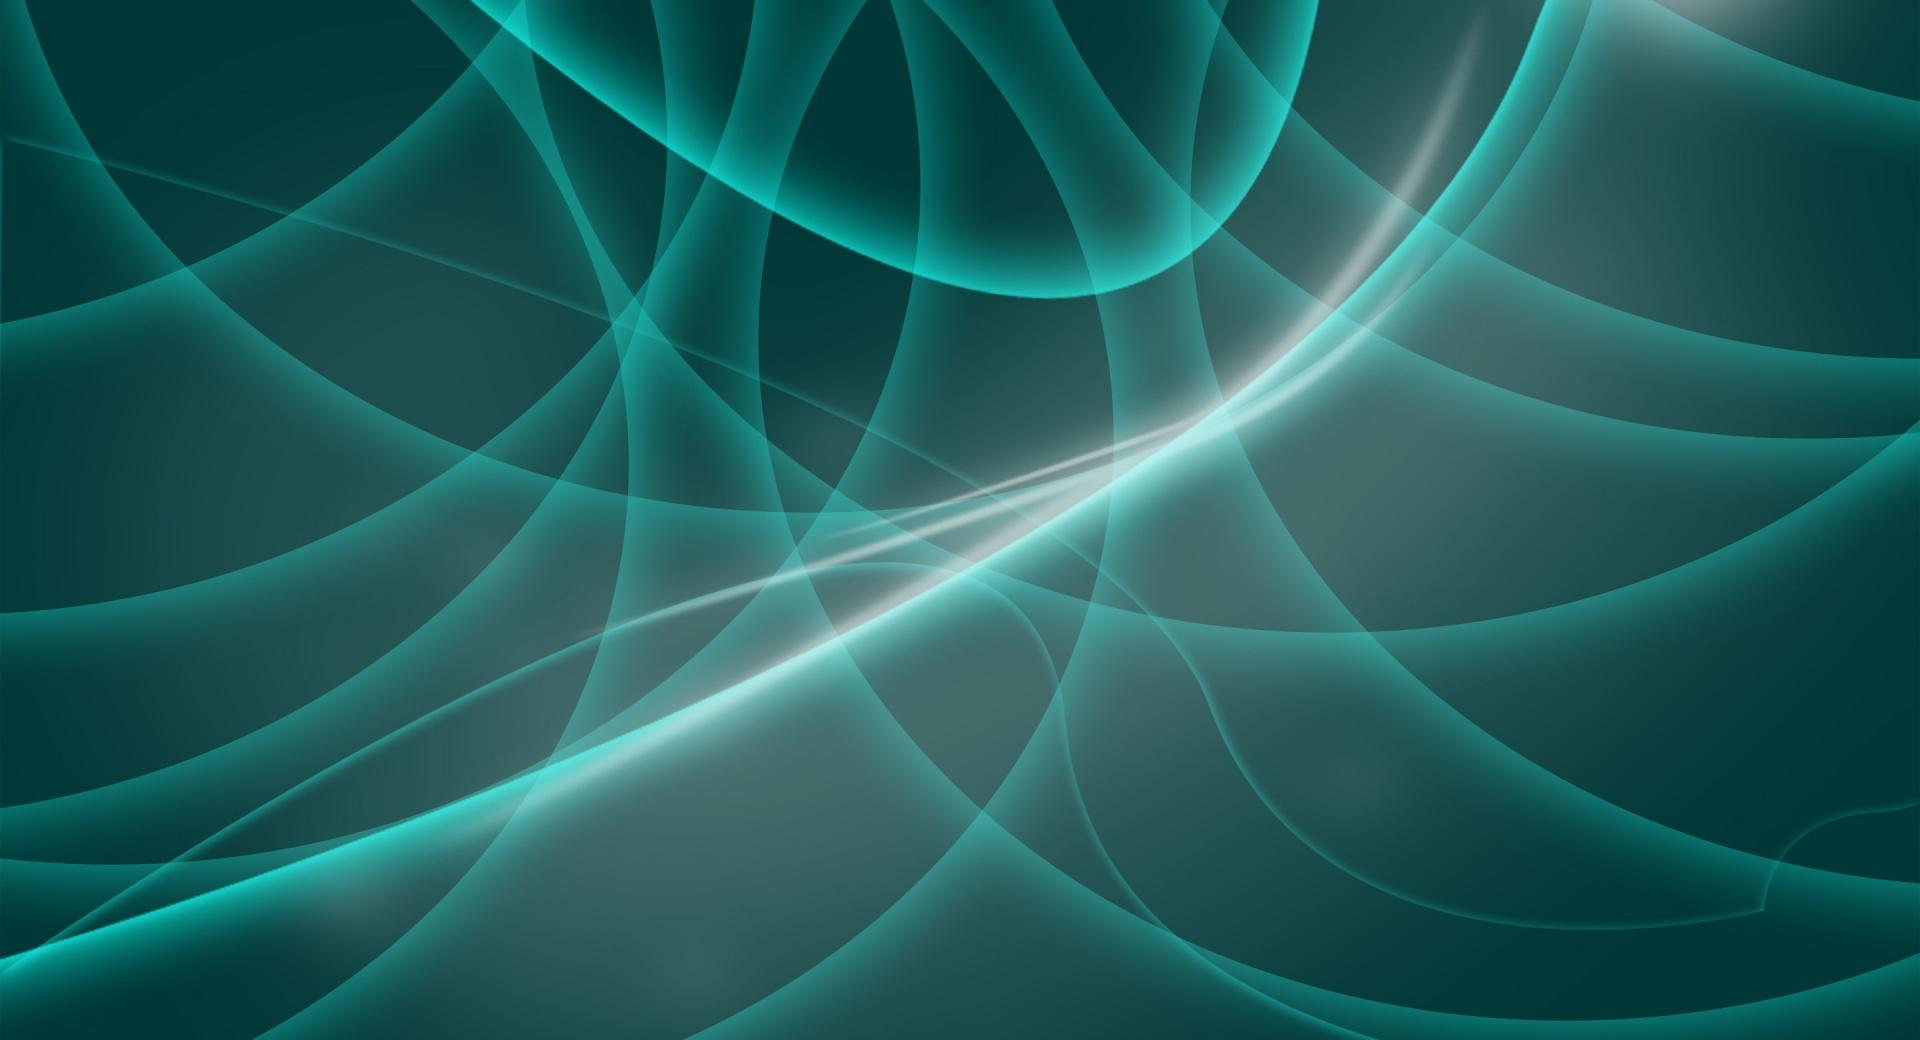 Abstract Turquoise Lines wallpapers HD quality